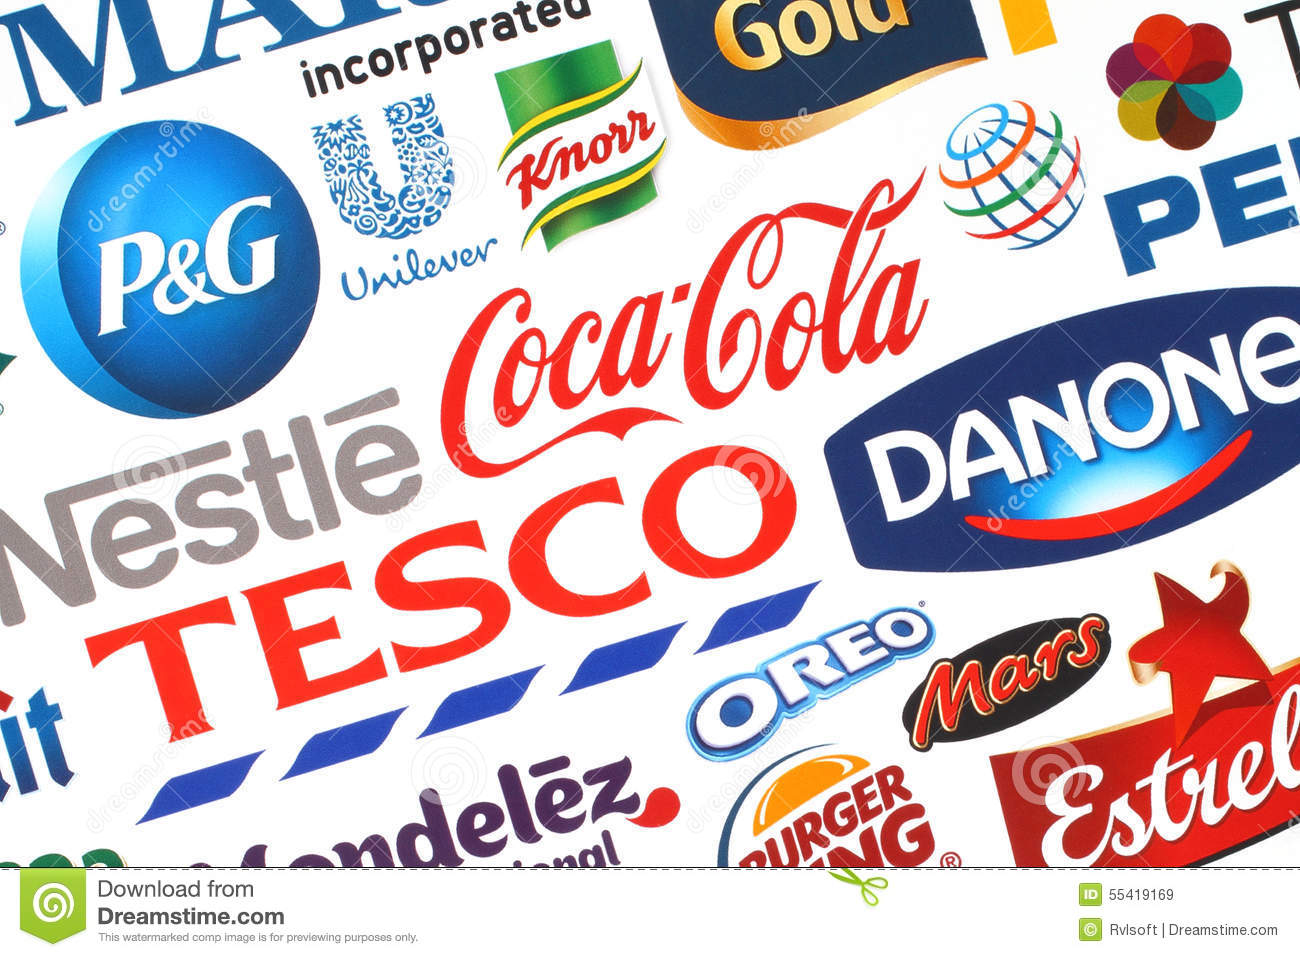 tesco business strategy essays Category: marketing business management essays title: tesco marketing strategy.